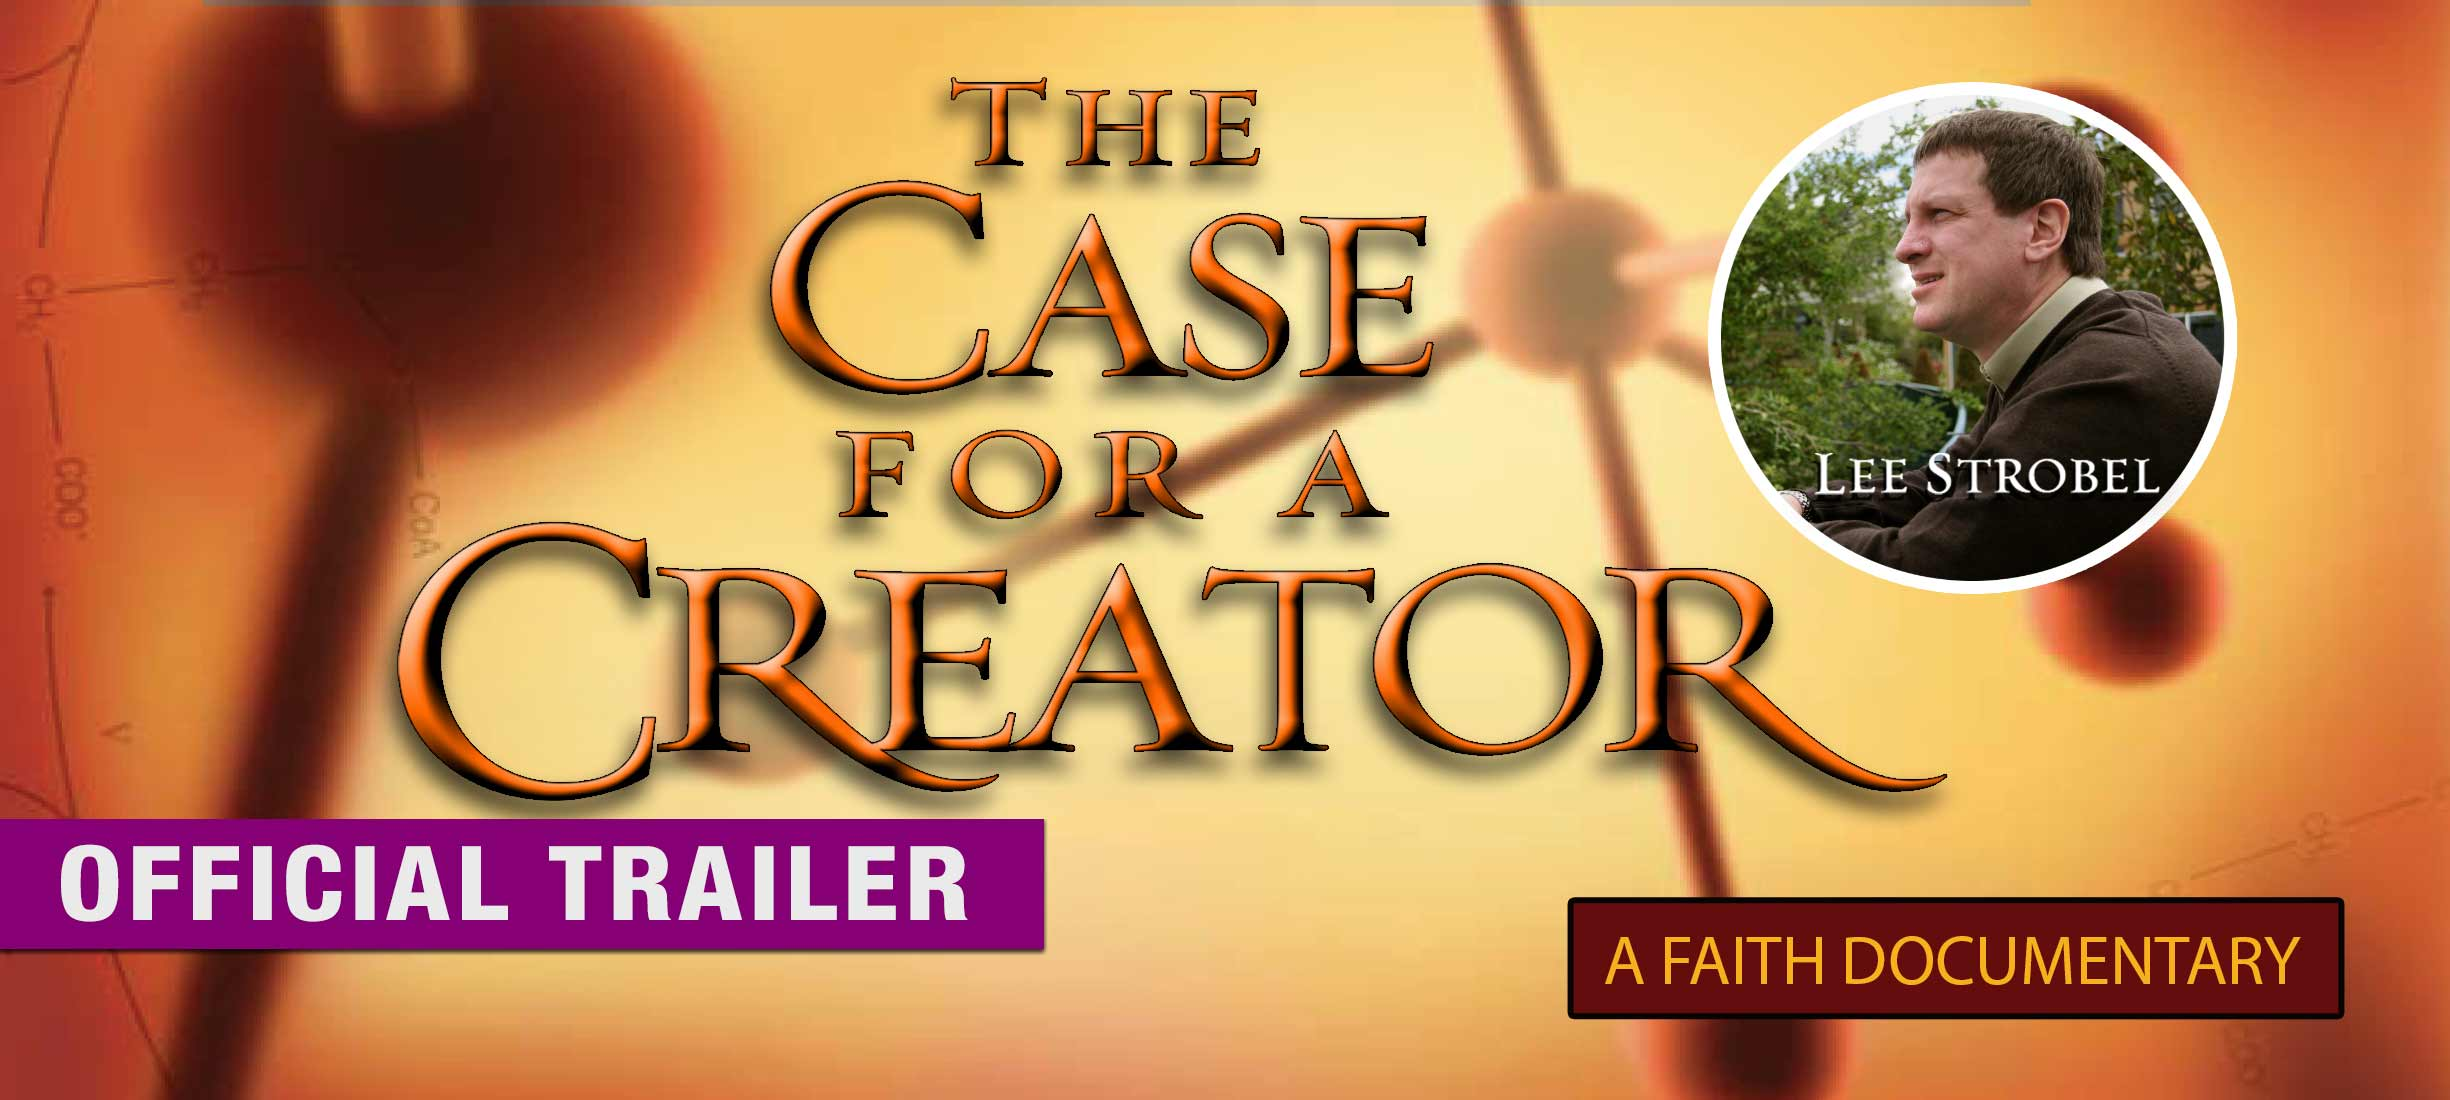 The Case for a Creator: Documentary Trailer